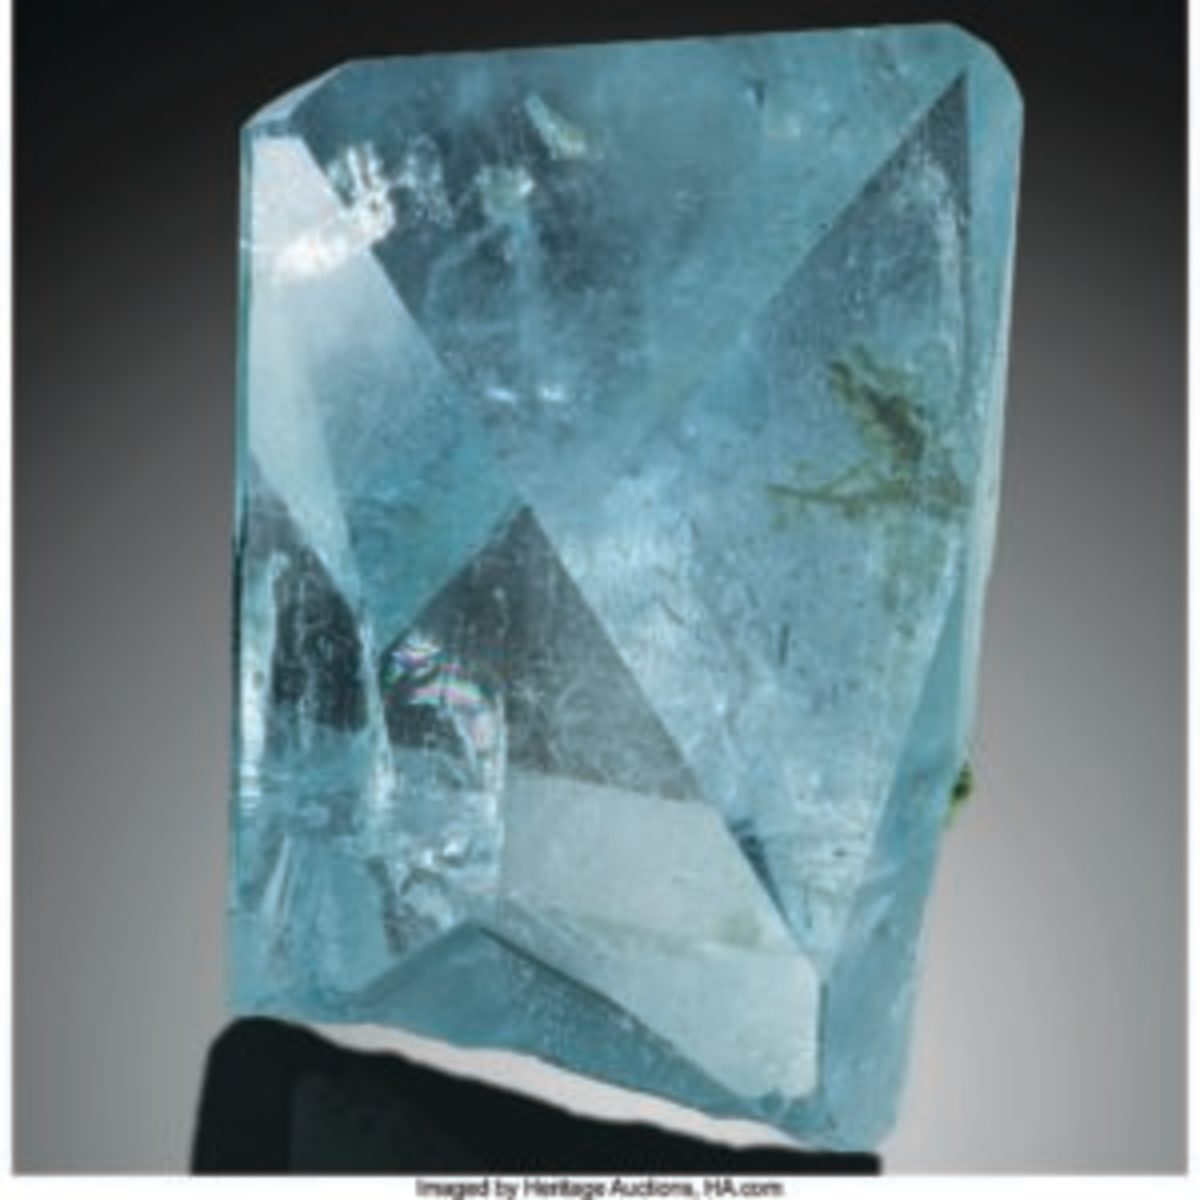 The sale's top lot was this topaz from Brazil, which drew $200,000. Images courtesy of Heritage Auctions